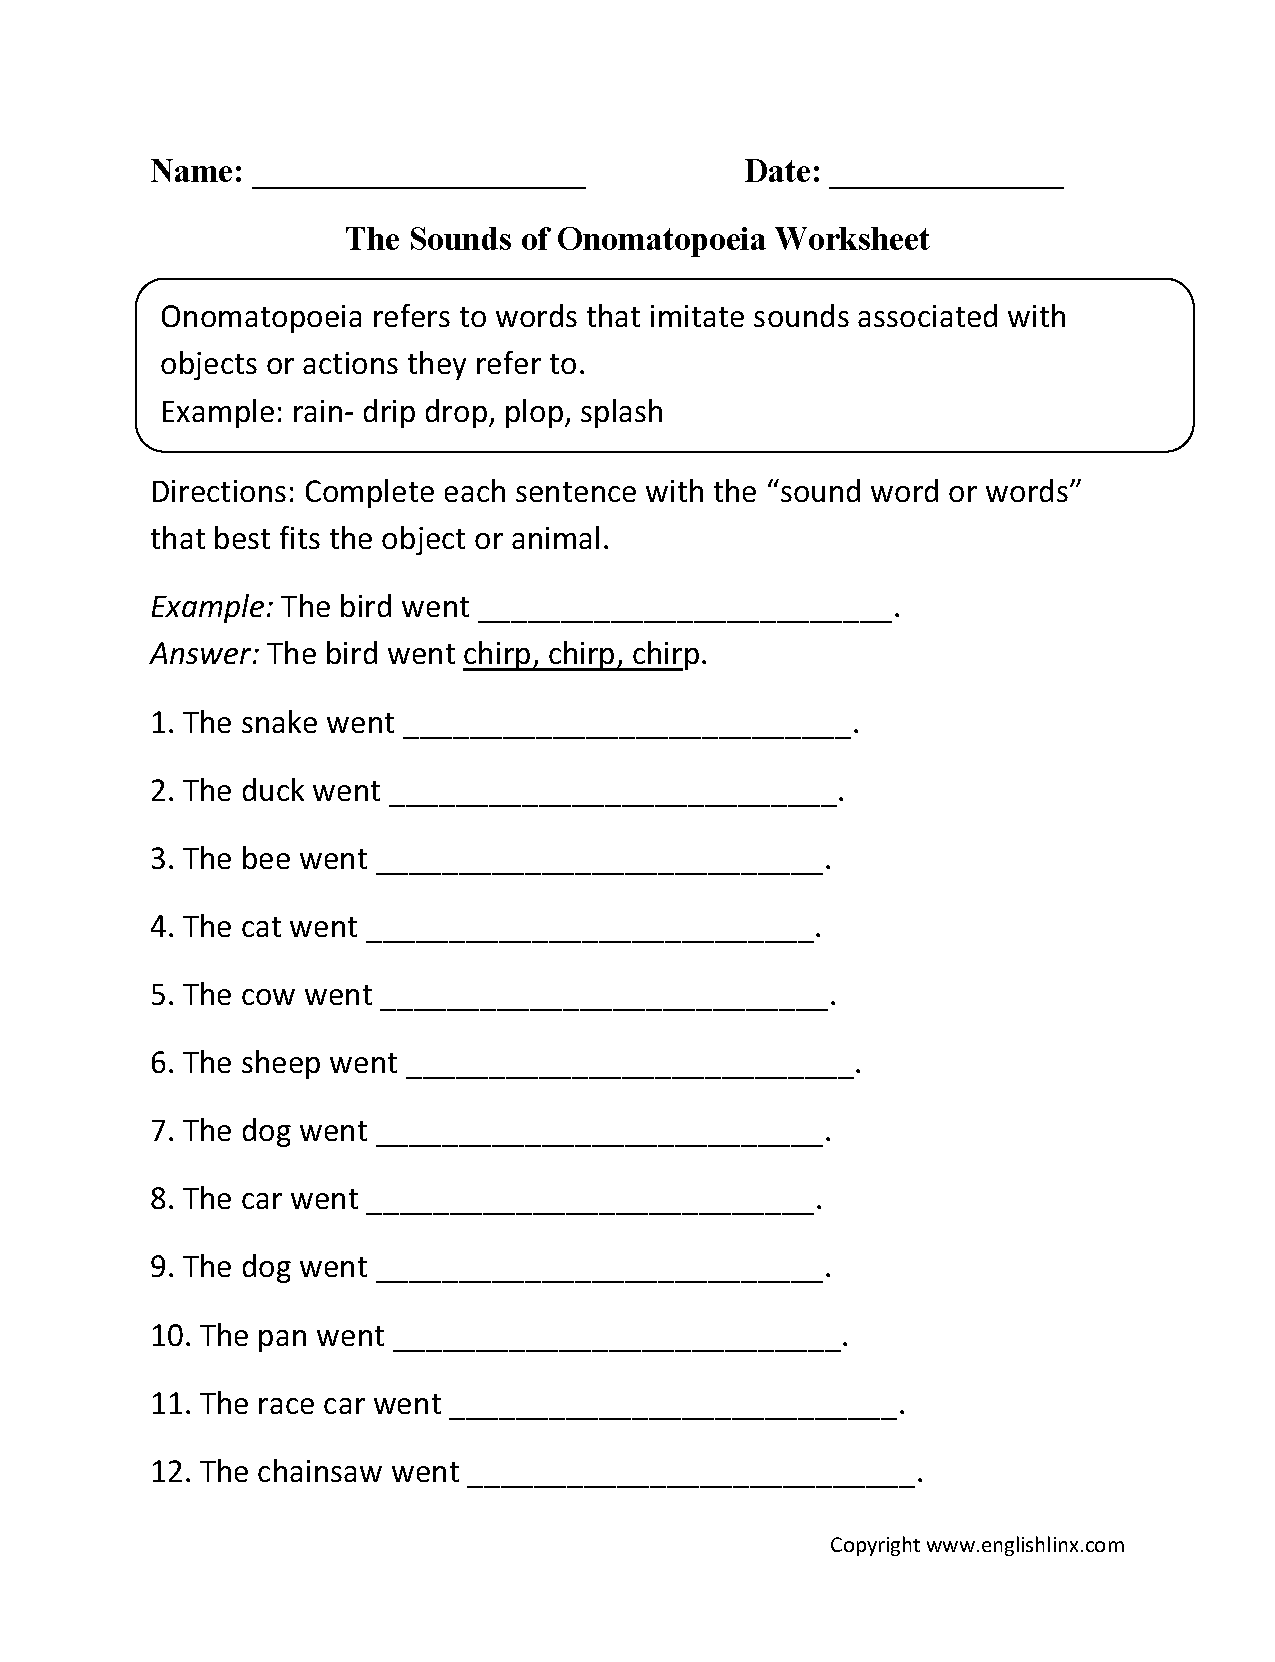 Worksheets Alliteration Worksheet completing alliteration worksheet englishlinx com board pinterest worksheets and english reading